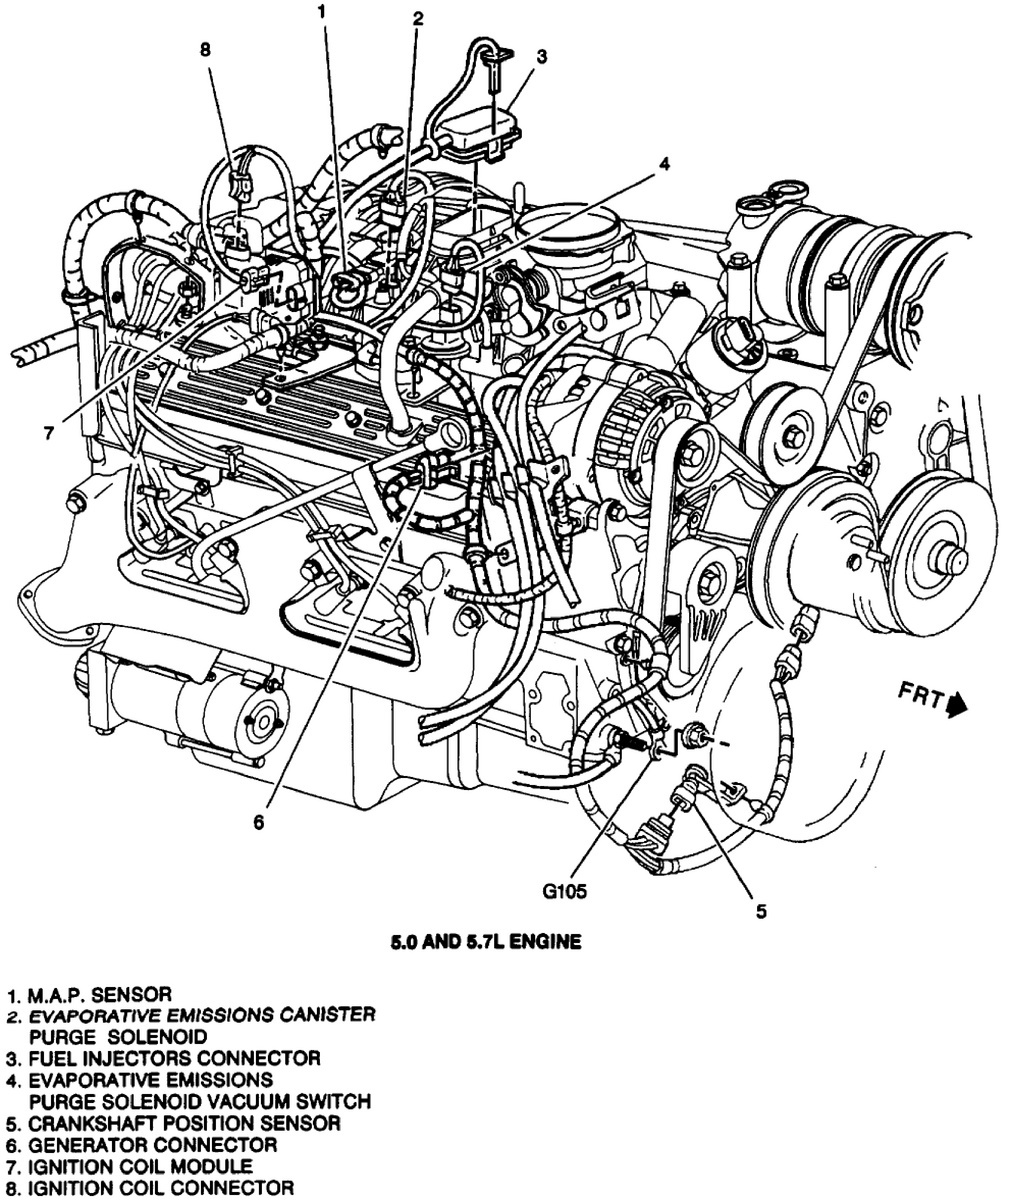 Miraculous Ford Engine Parts Diagram Basic Electronics Wiring Diagram Wiring Digital Resources Remcakbiperorg